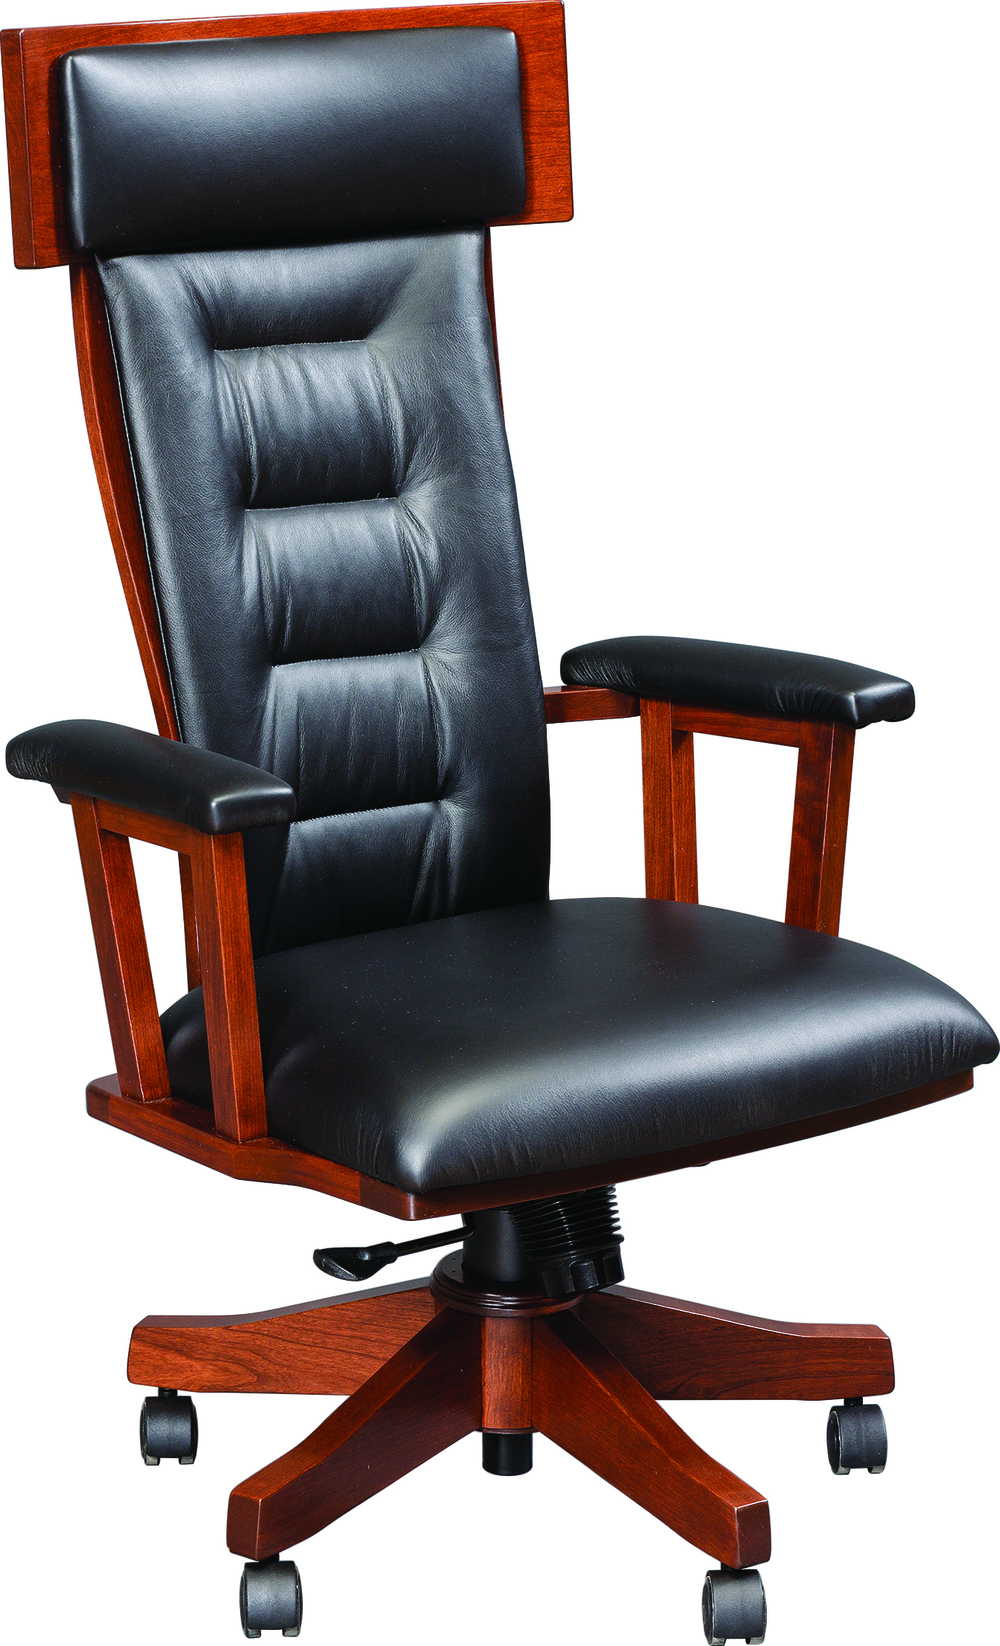 London Desk Chair with gas lift